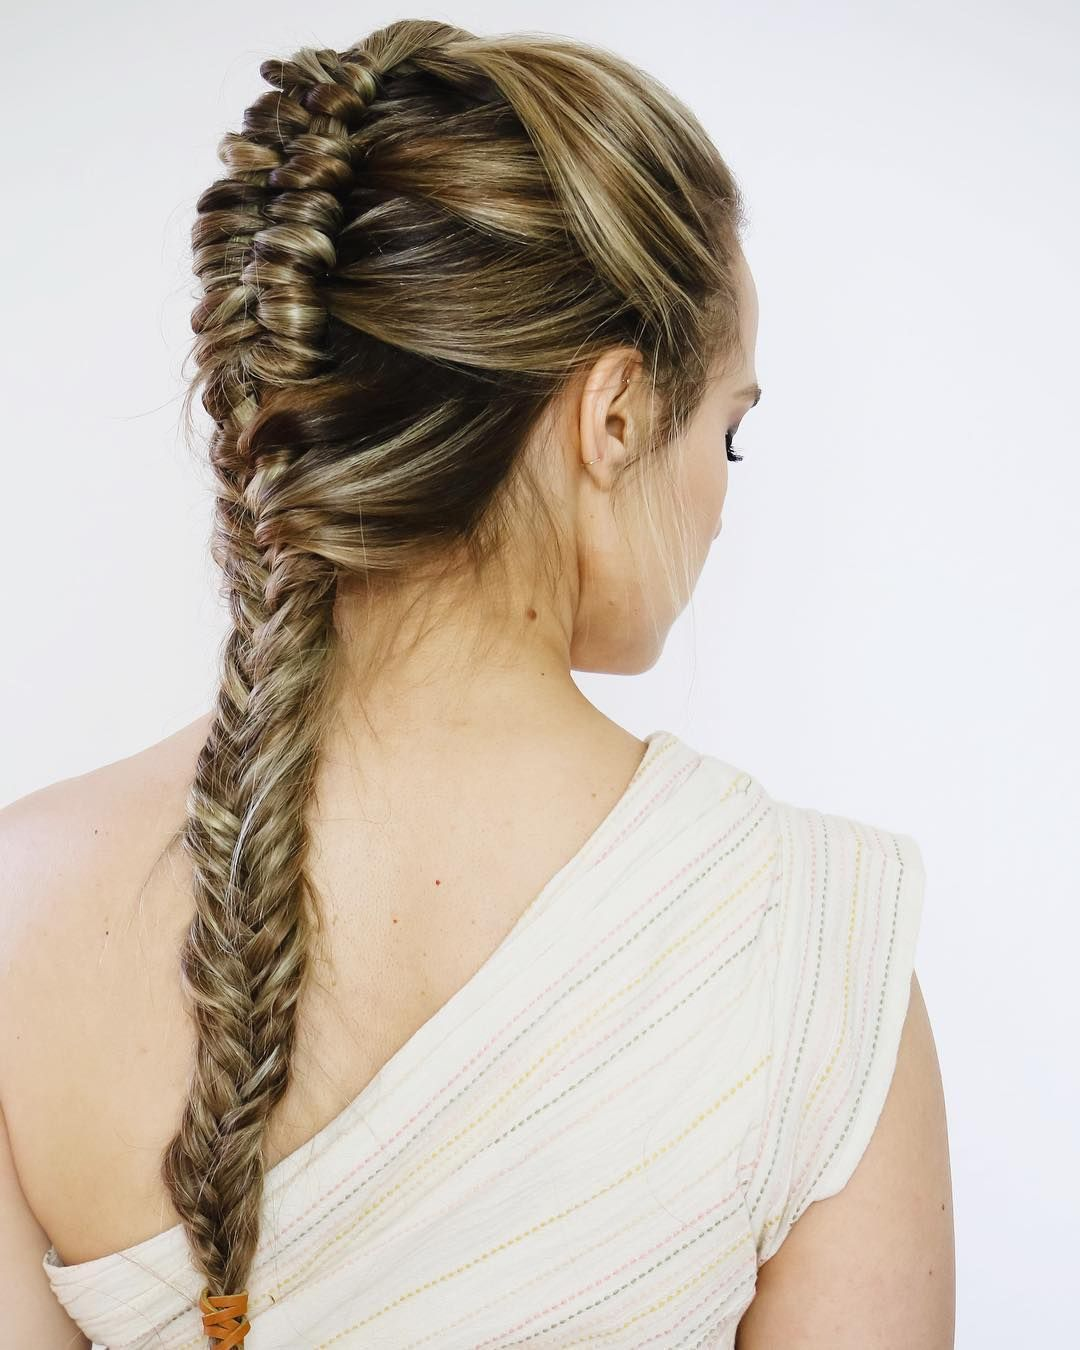 Braid Hairstyles For Wedding Party: 8 Stunning Wedding Hairstyles Inspired By Wonder Woman